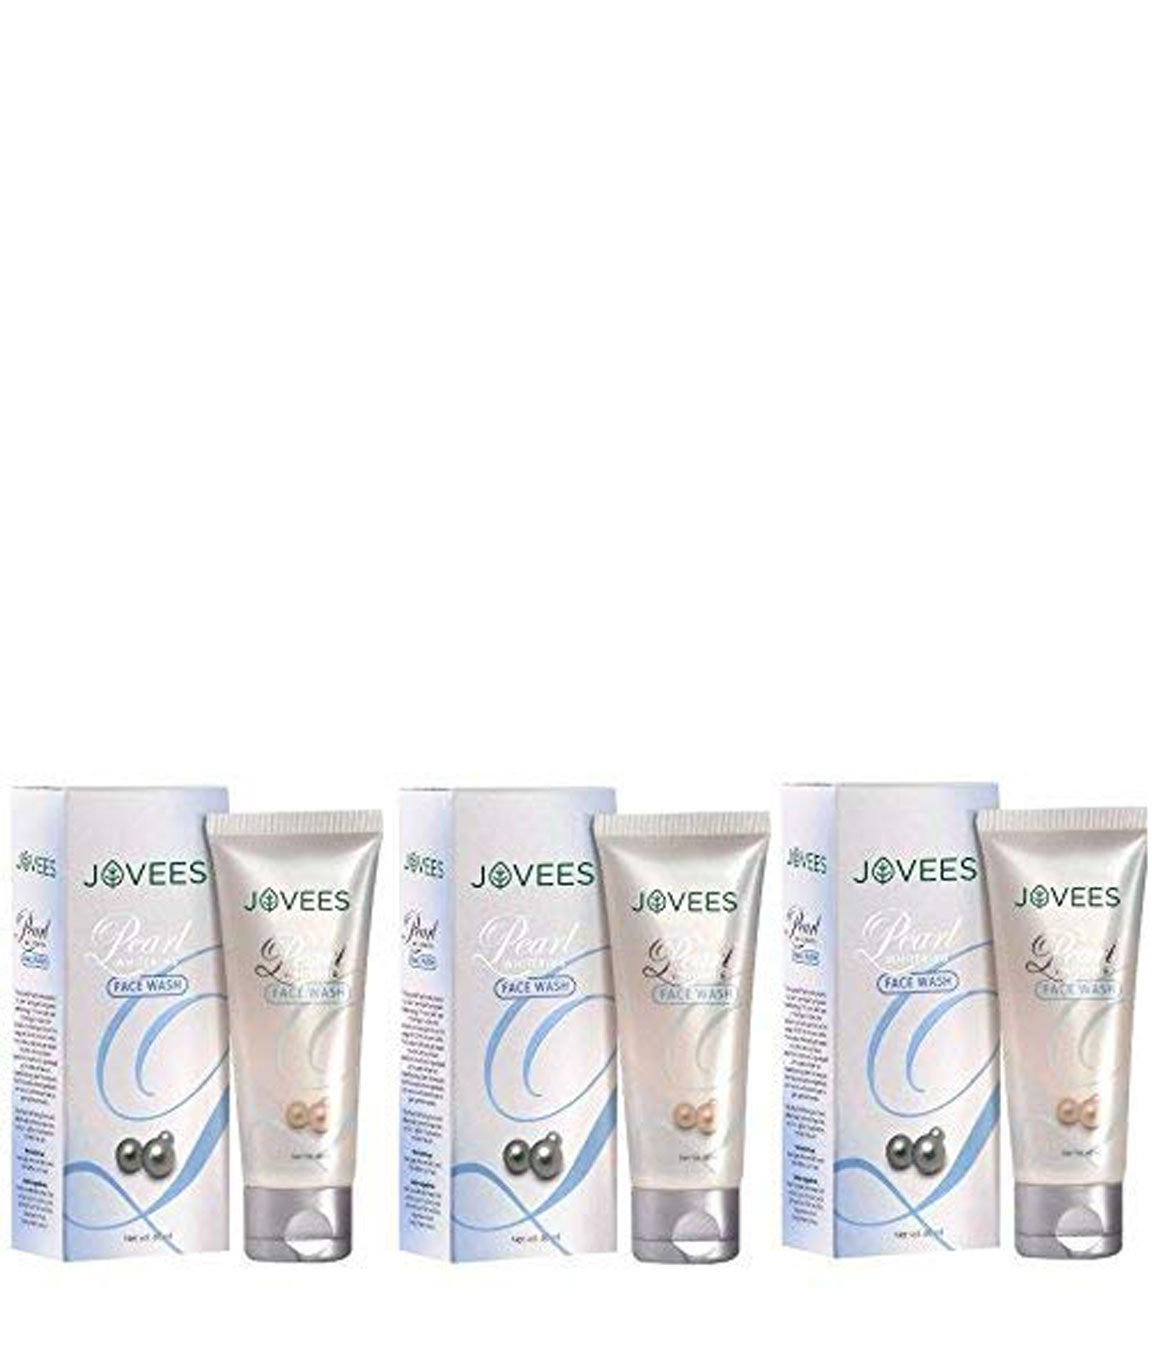 Jovees Pearl Whitening Face Wash, 60gm (Pack of 3)